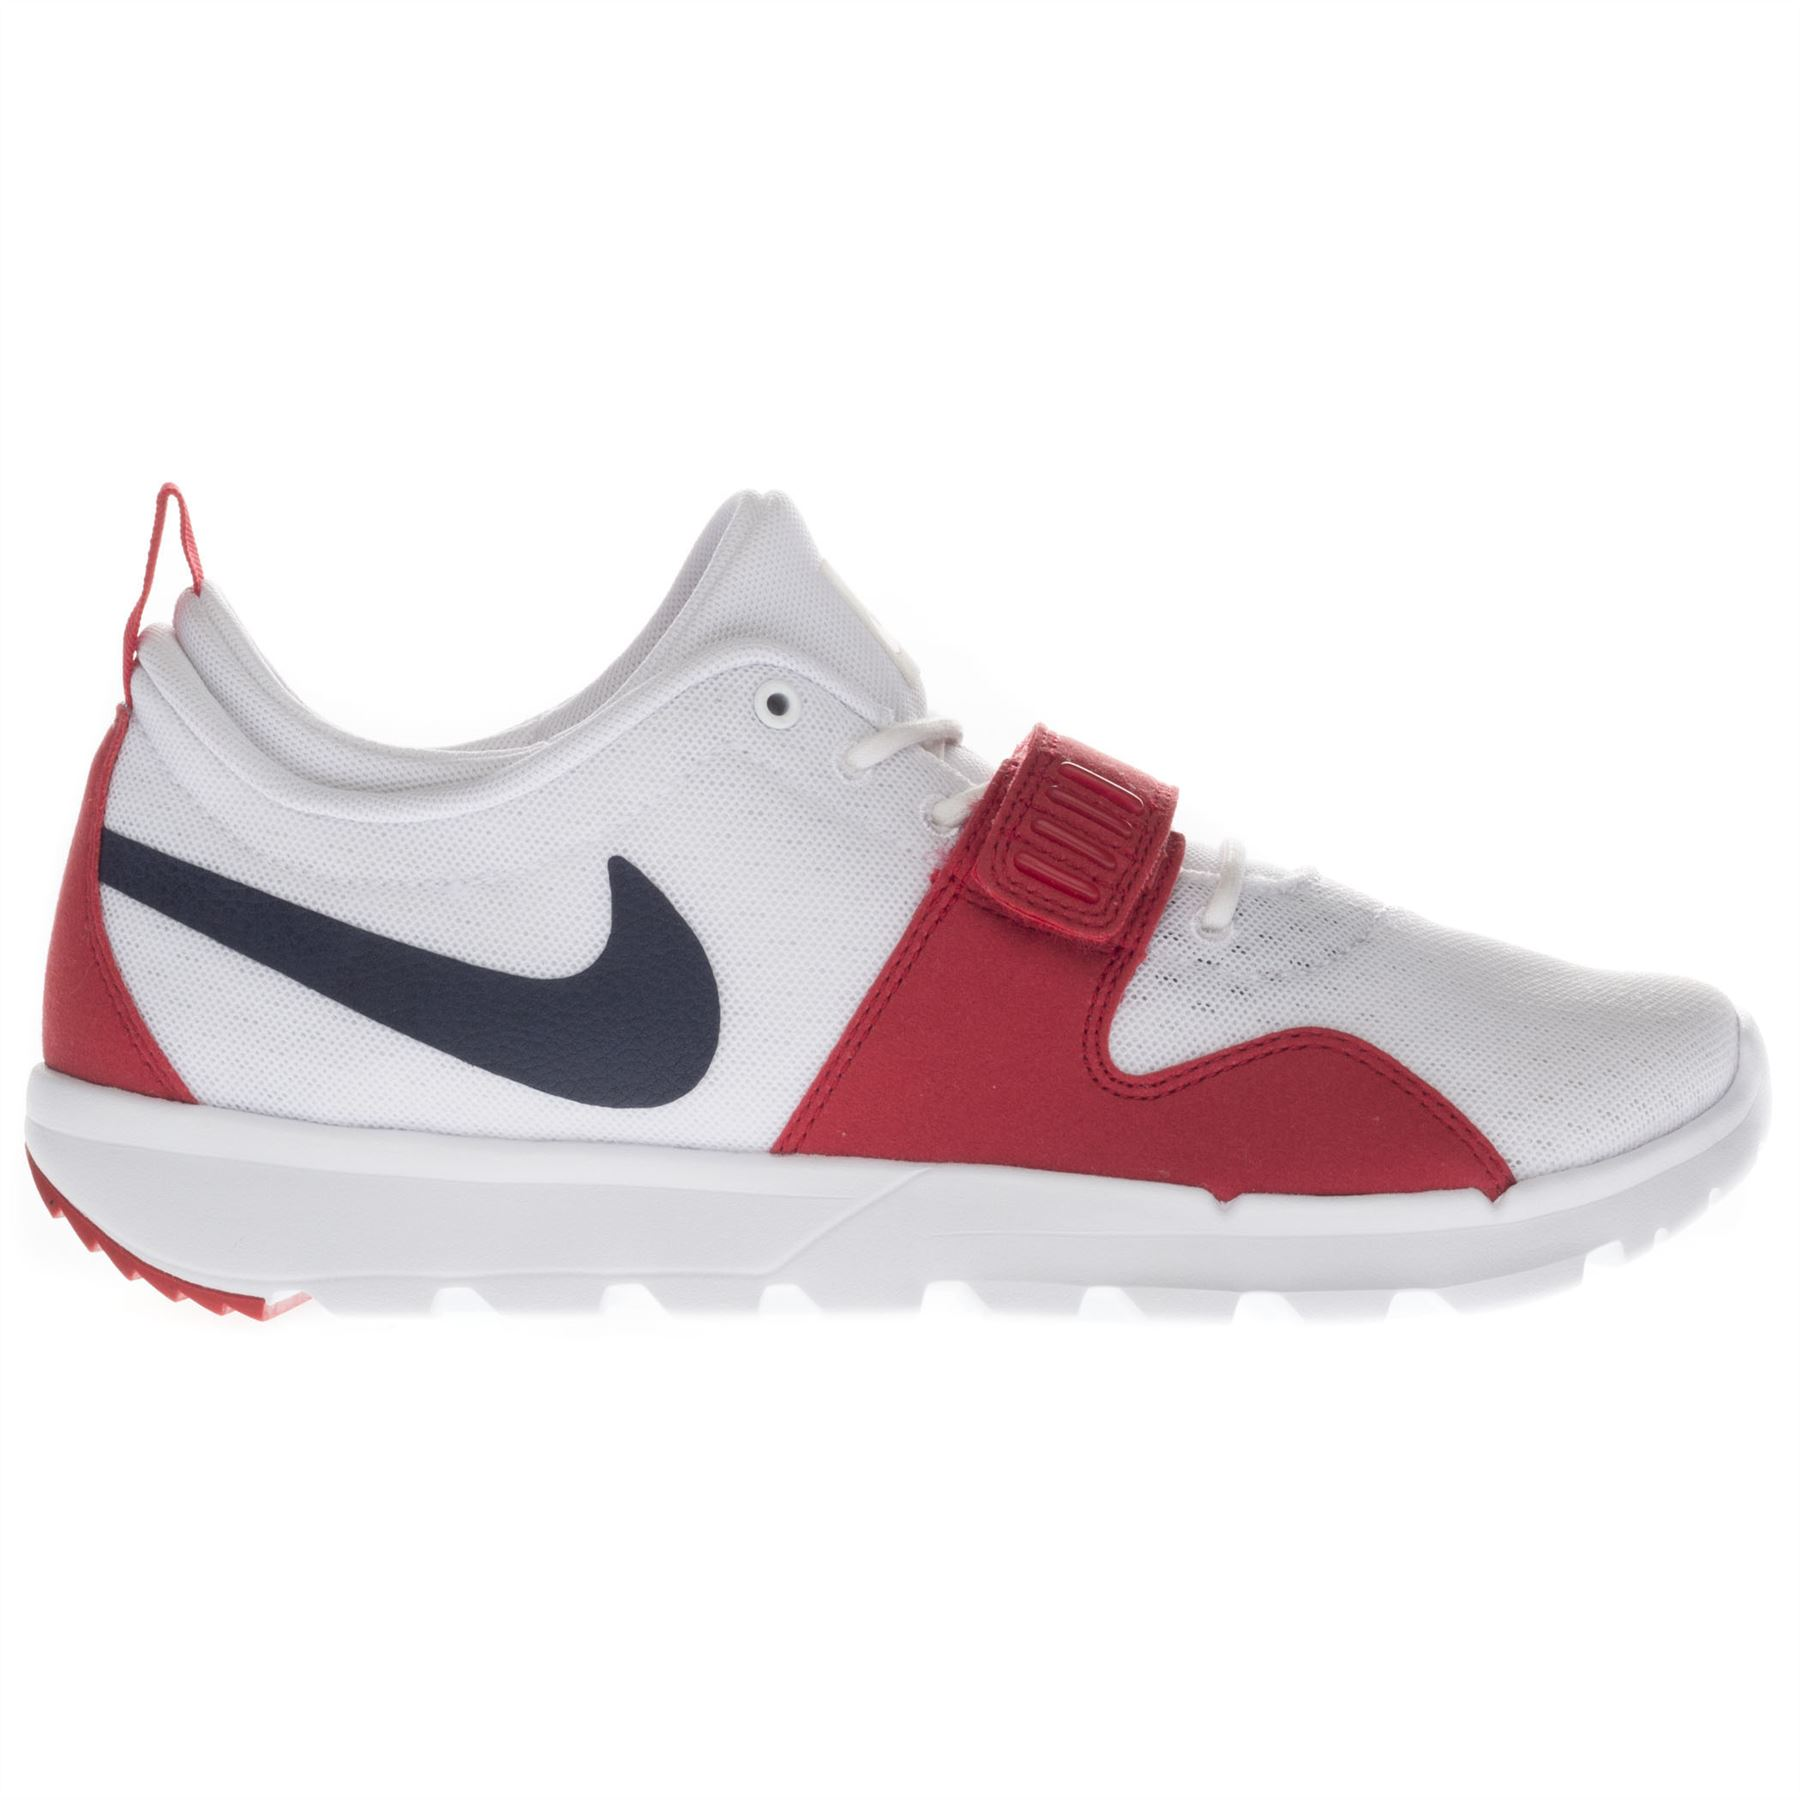 3b00ae76238 Nike Men s Trainerendor Low Top Running Sports Lace Up Strap Gym Trainers